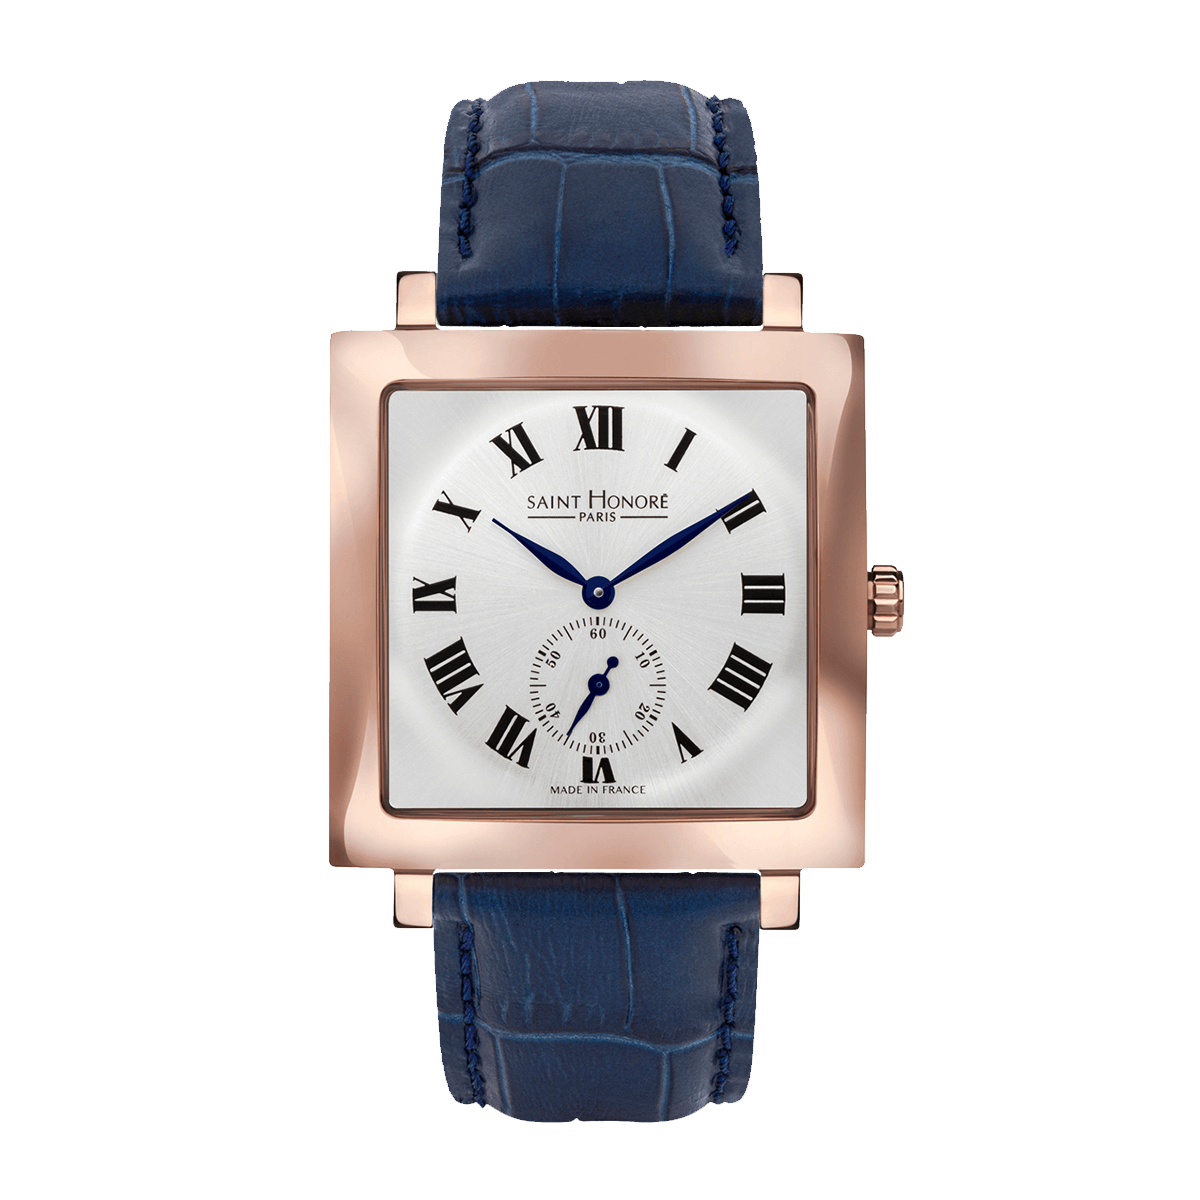 CARREE Men's watch - Square rose gold finish case, silver dial, blue leather strap